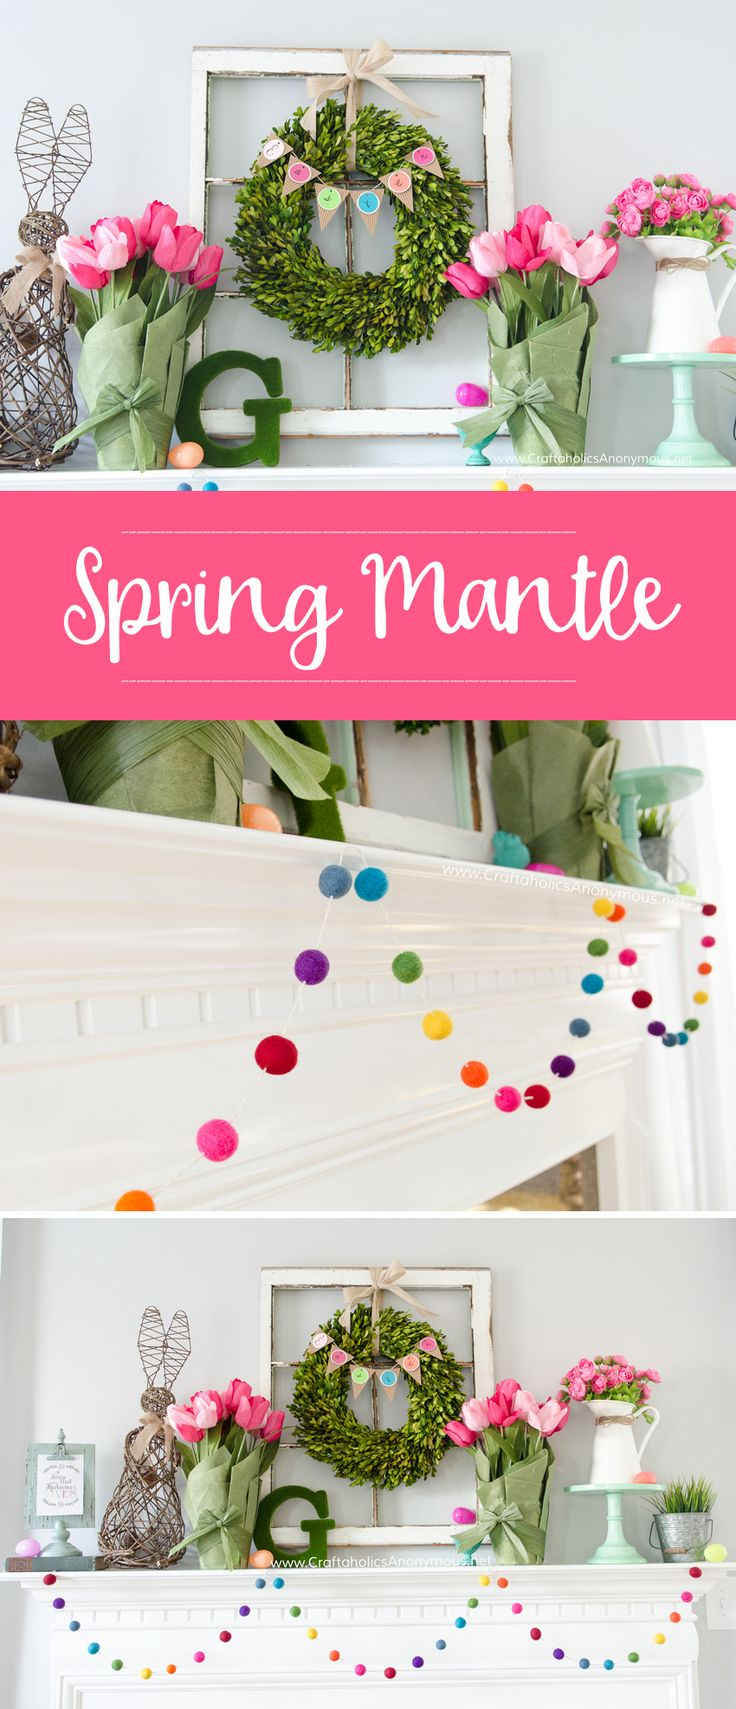 Outdoor easter decorations pinterest - Diy Spring Mantle Decor Love That Rainbow Felt Ball Garland